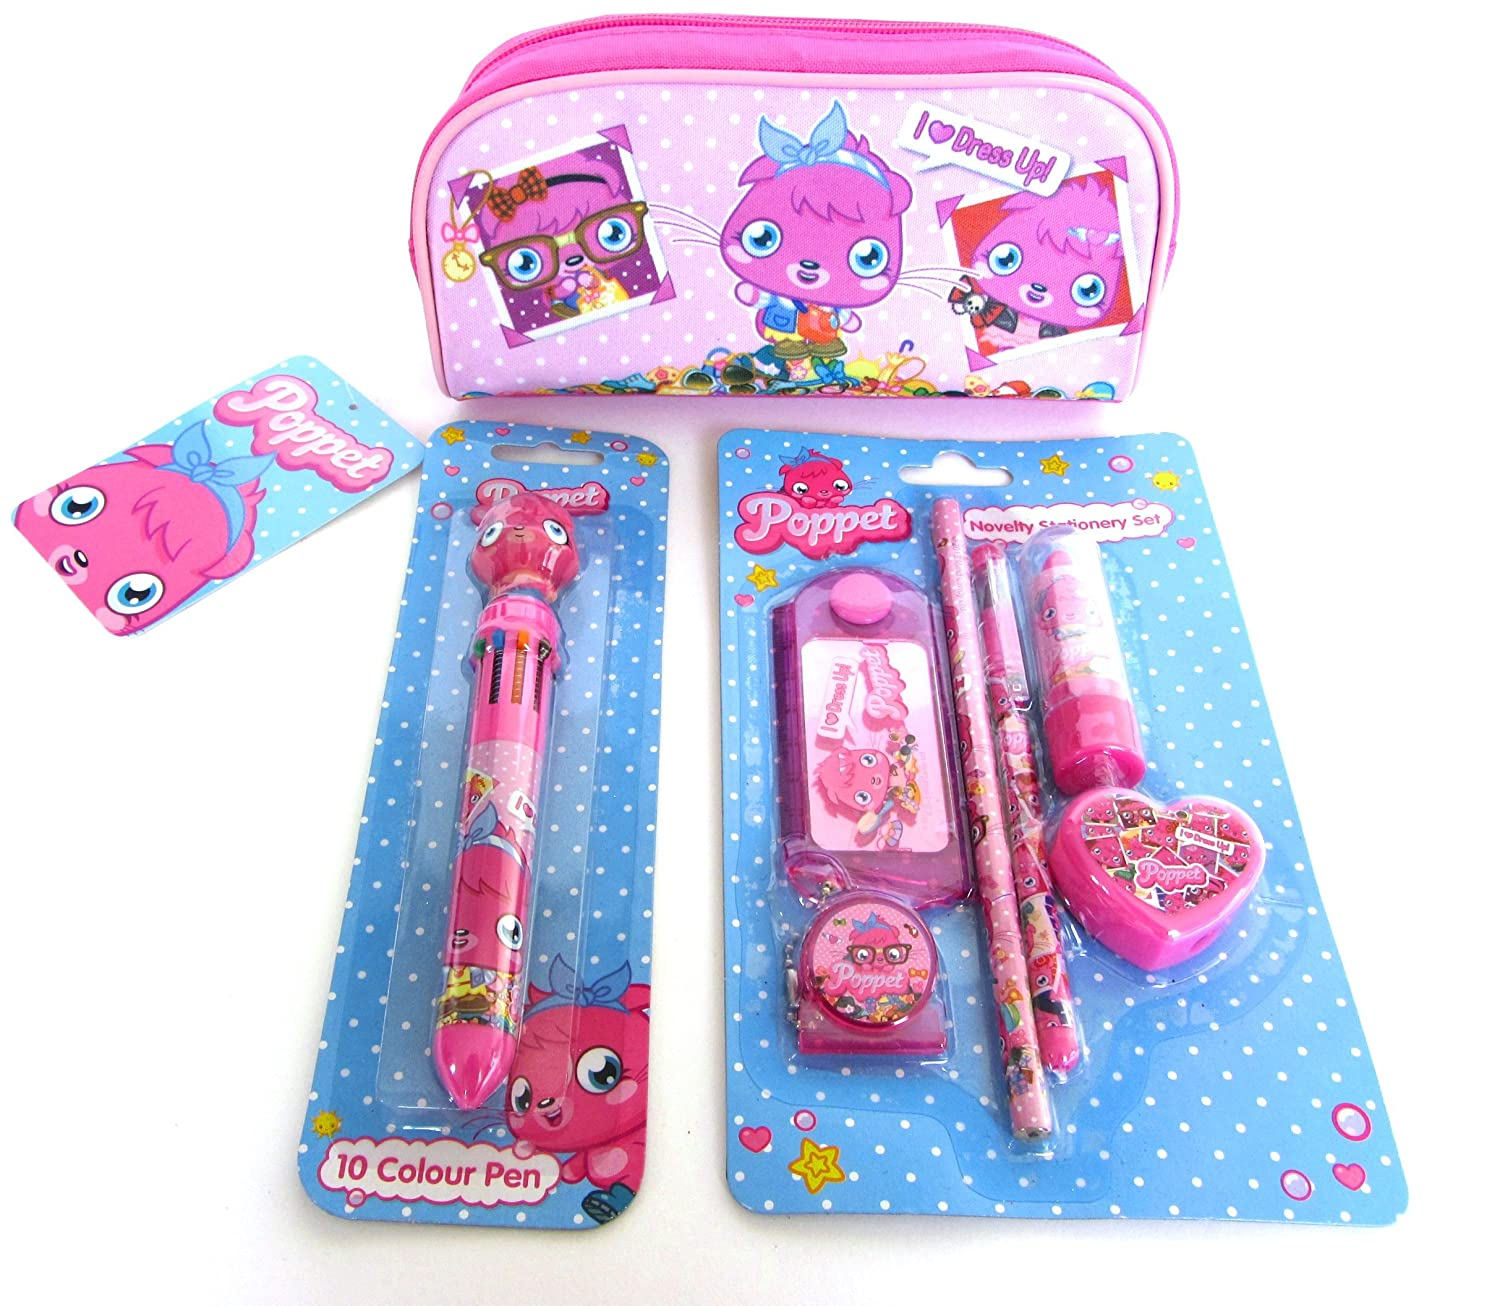 Moshi monster poppet novelty stationery set multi color pen and pencil case gift set amazon co uk toys games